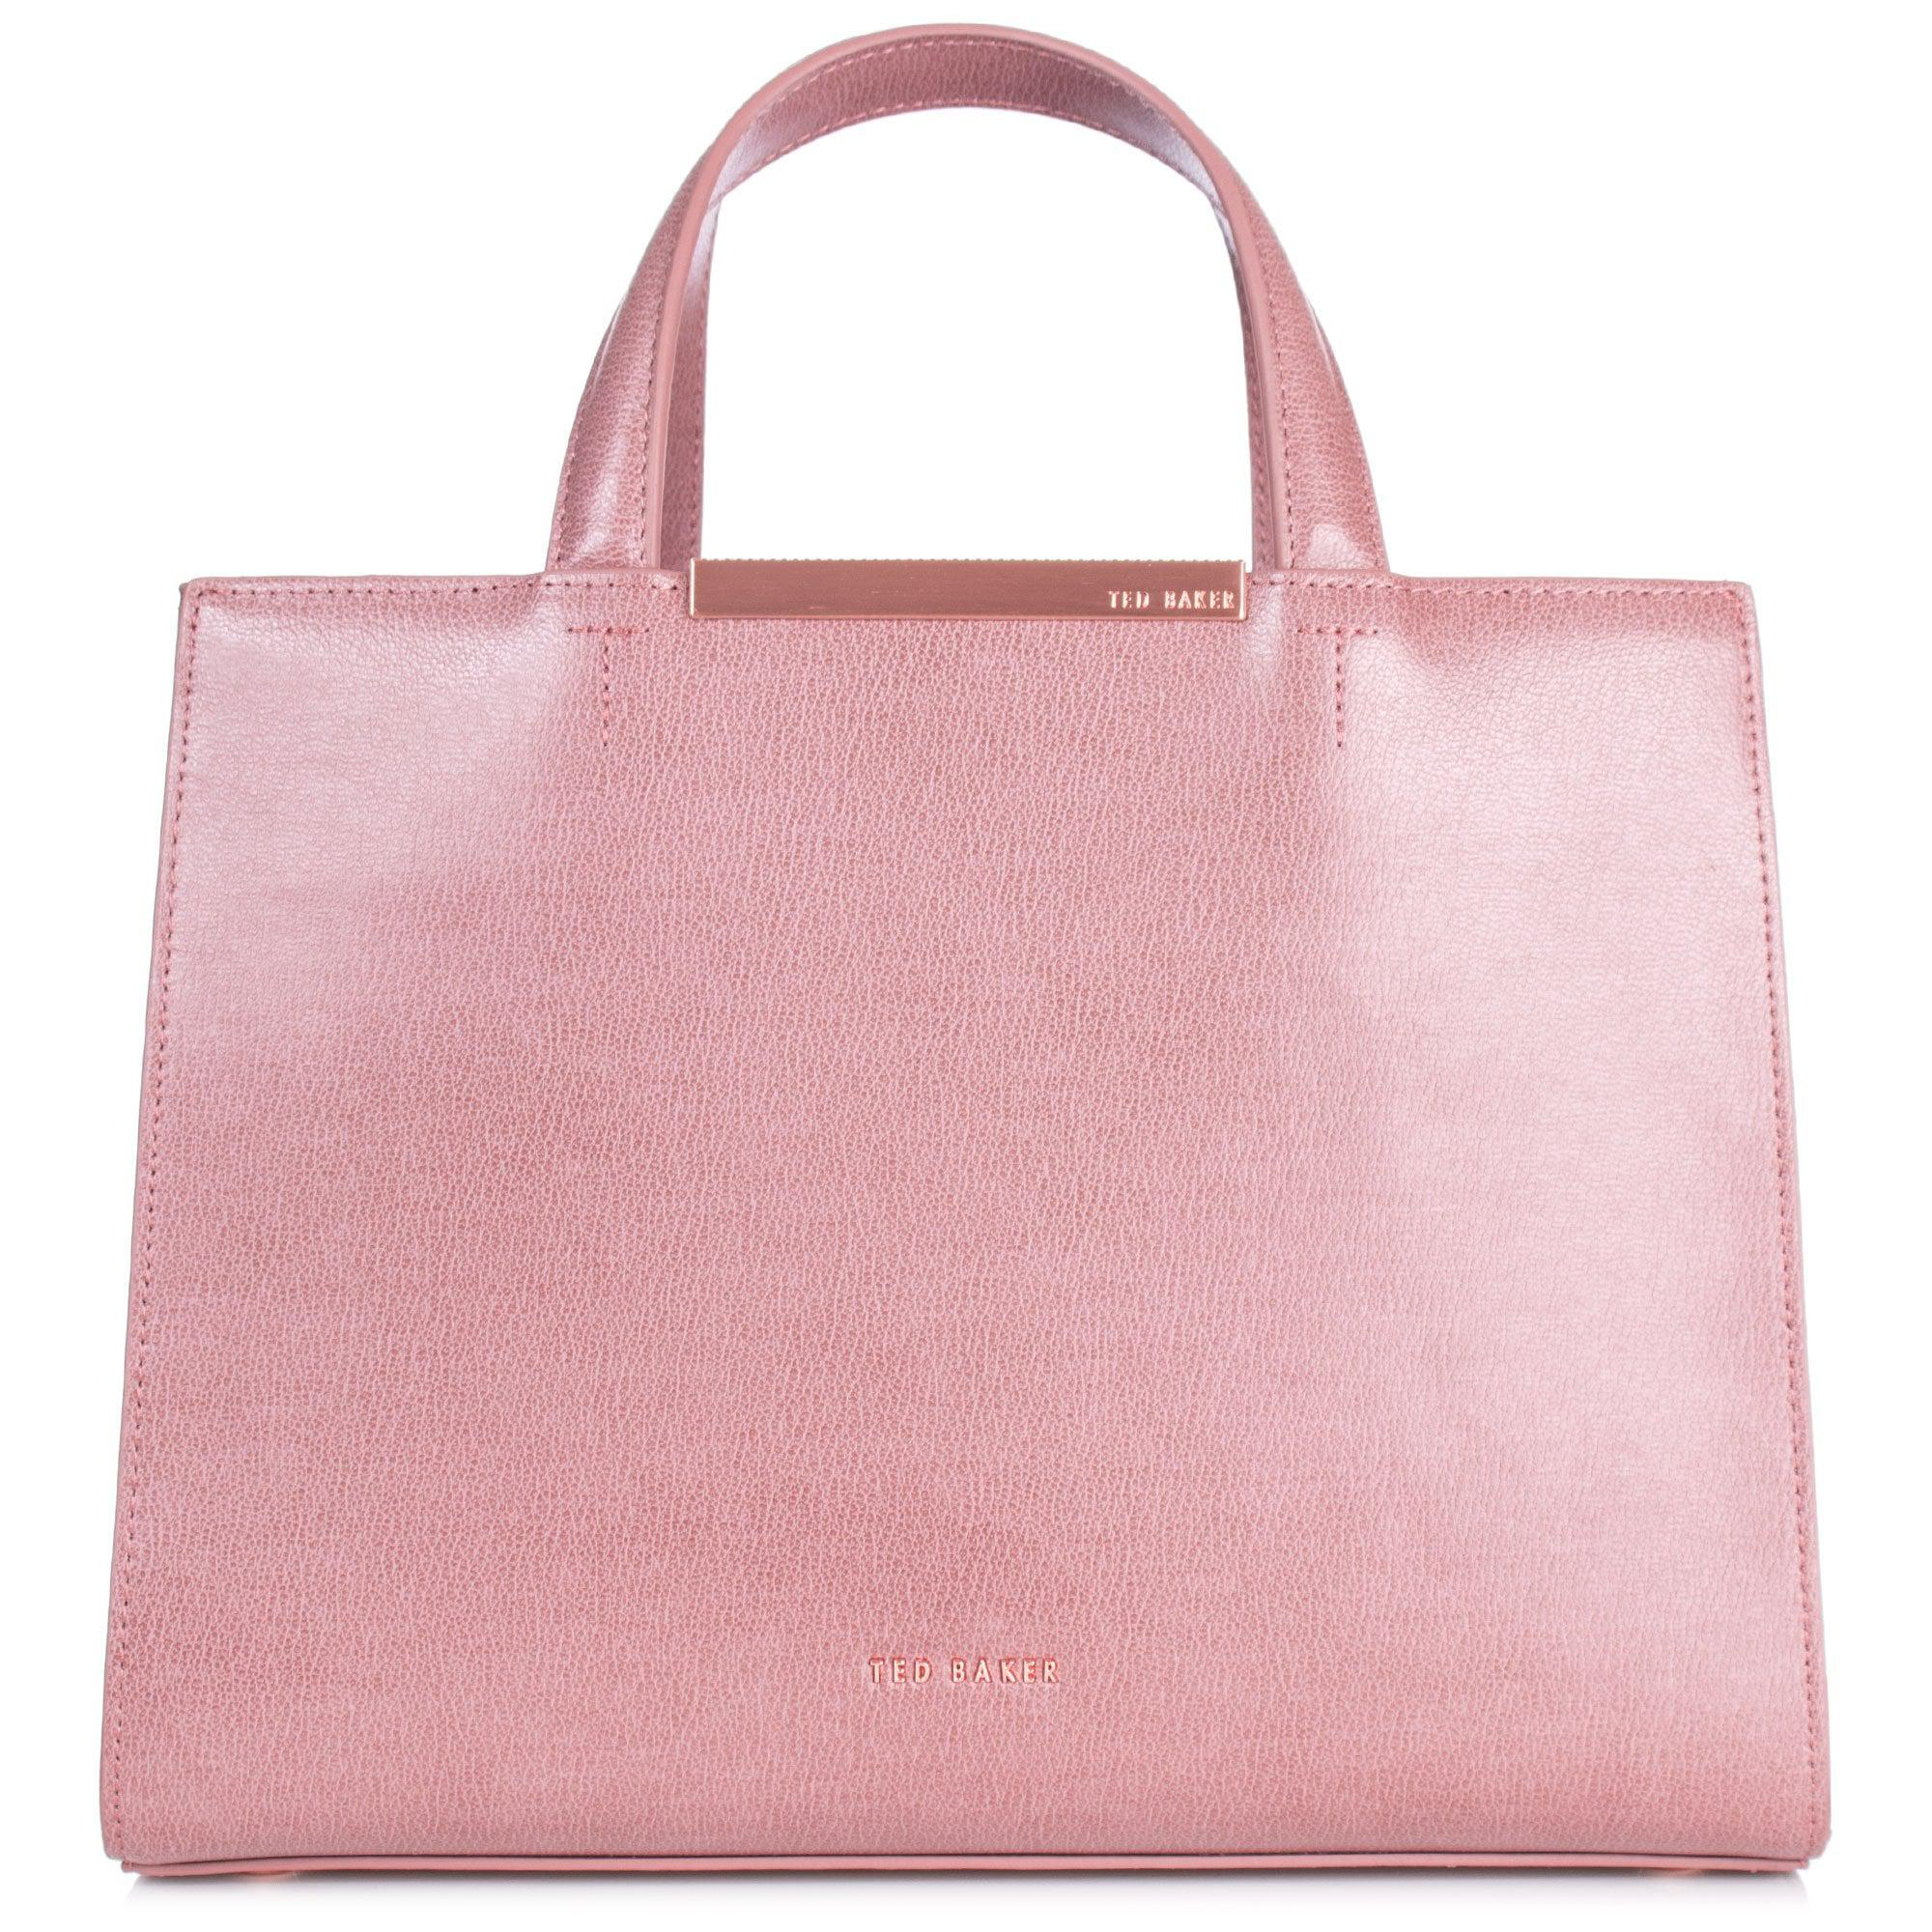 7dcc9bf243beb Ted Baker Madalyn Leather Tote in Pink - Lyst